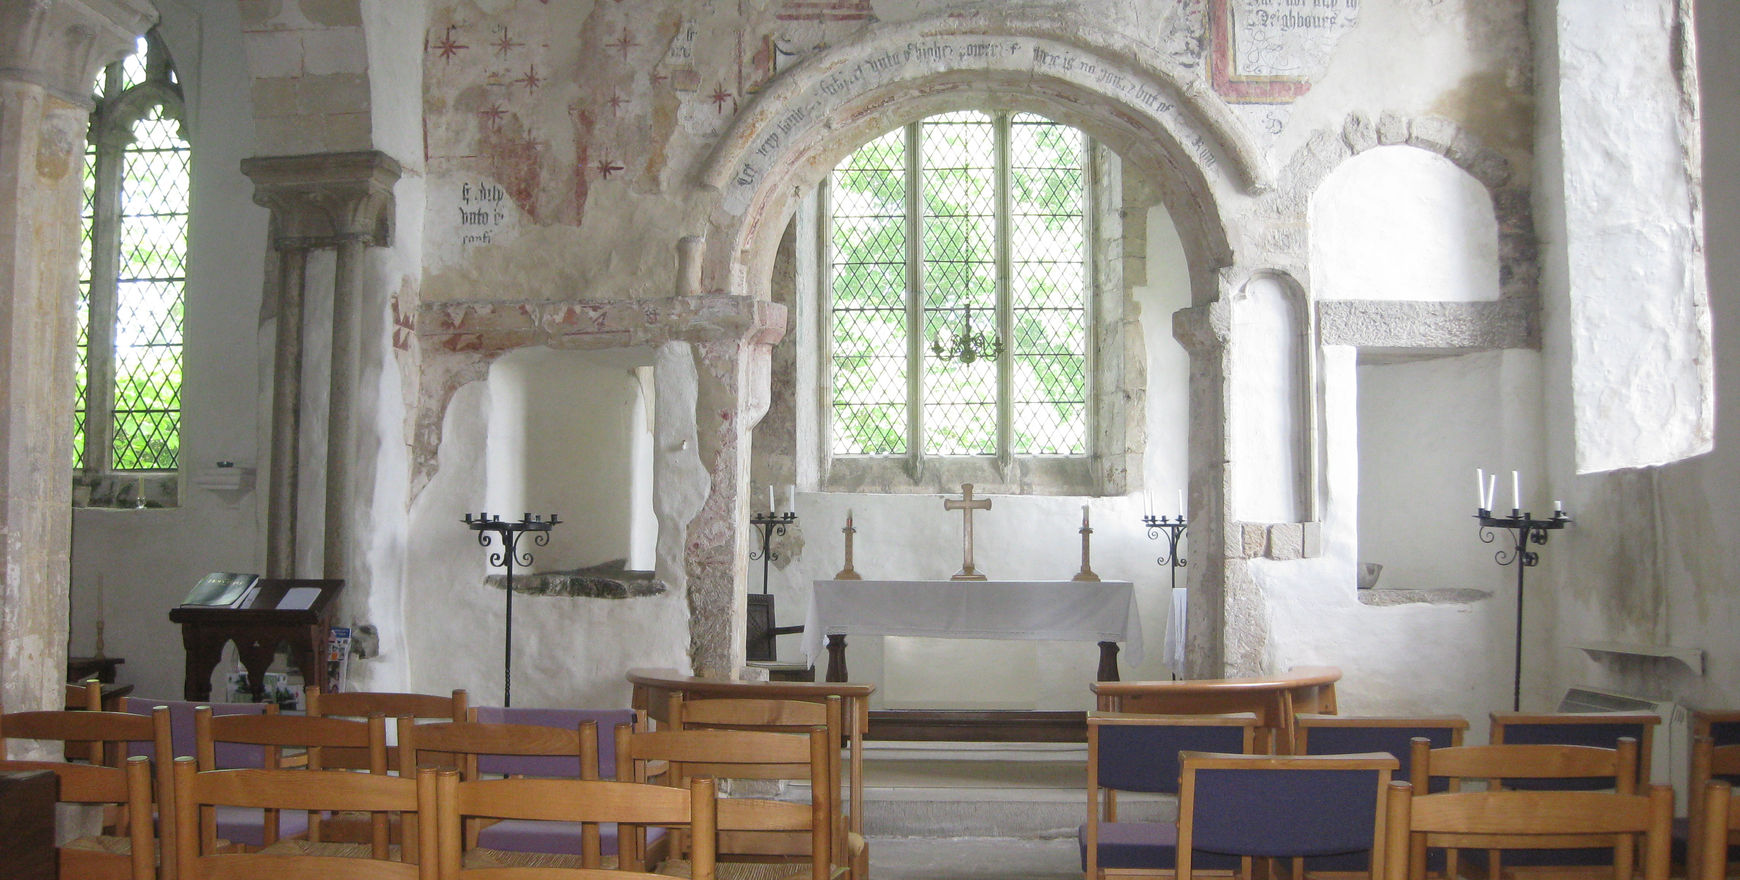 St Martin on the Walls, Wareham